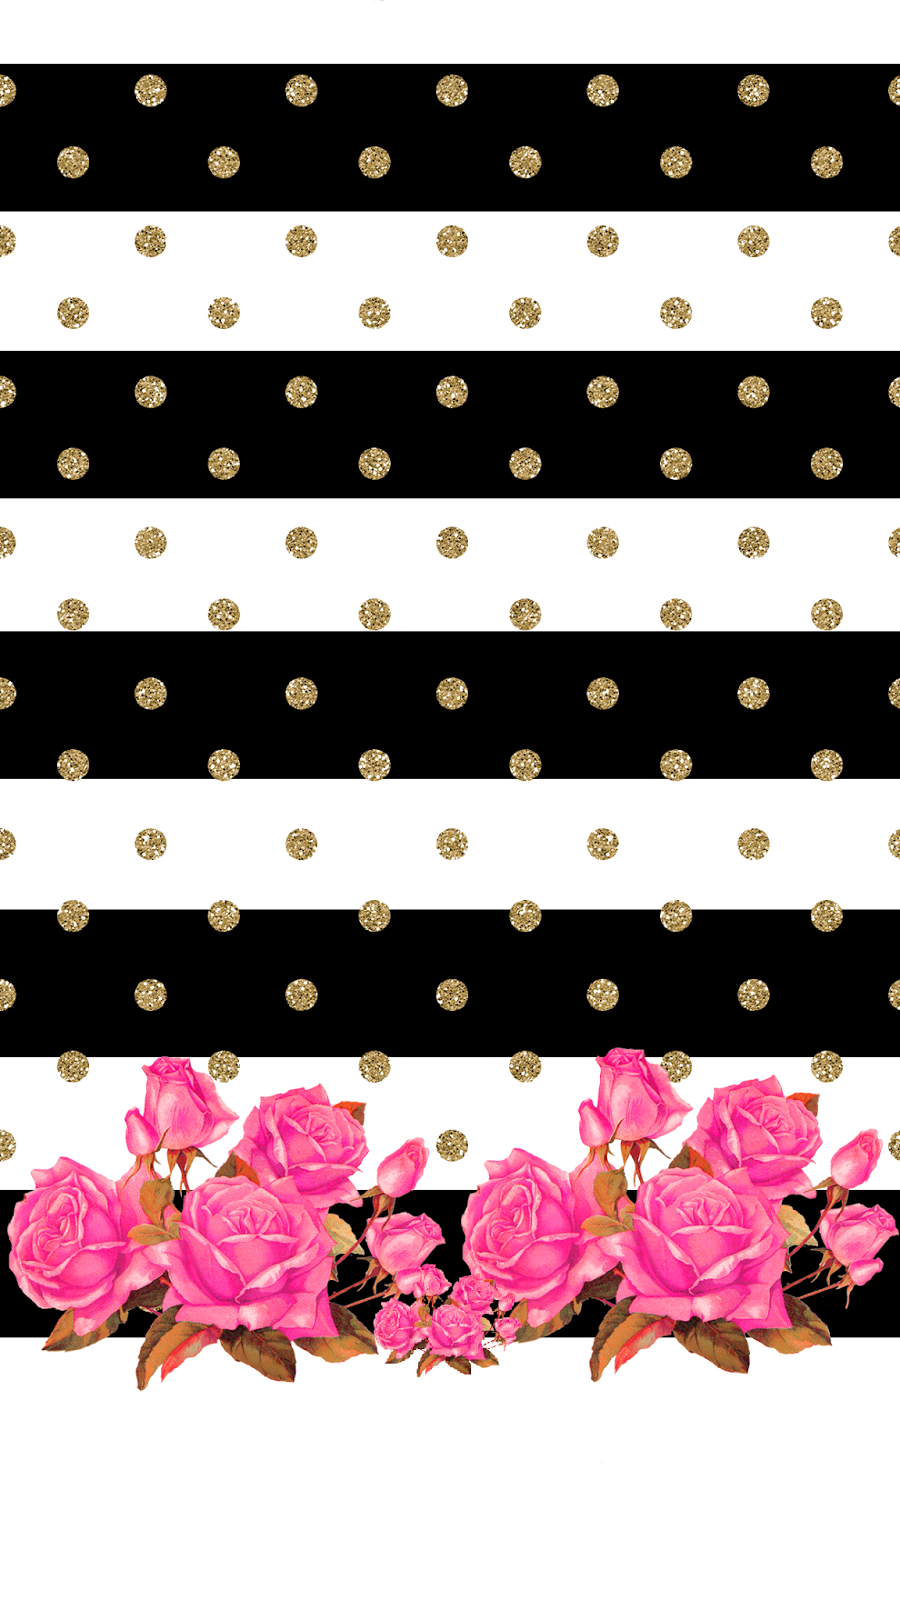 kate spade phone wallpaper  Mommy Lhey: Vintage Classy Rose | Even my phone wants to look cute ...